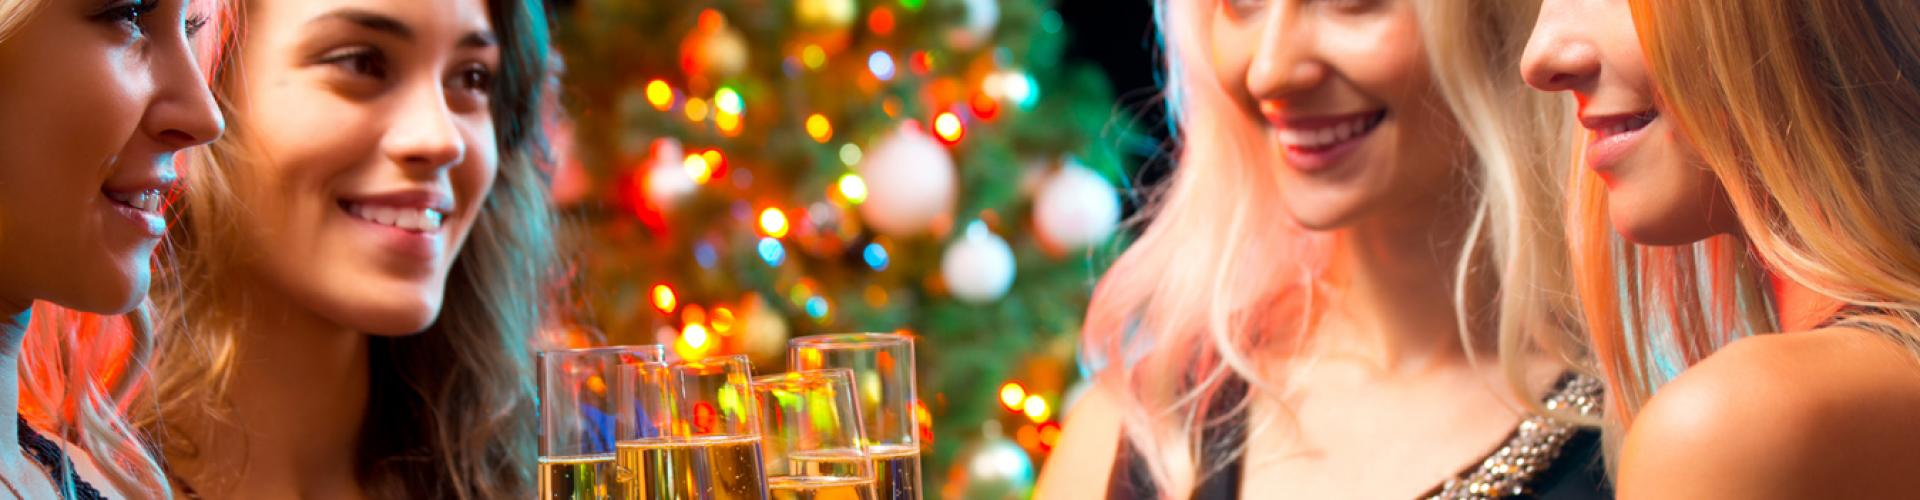 Christmas Party Nights, Hotel Events | Ravenwood Hall Bury St Edmunds